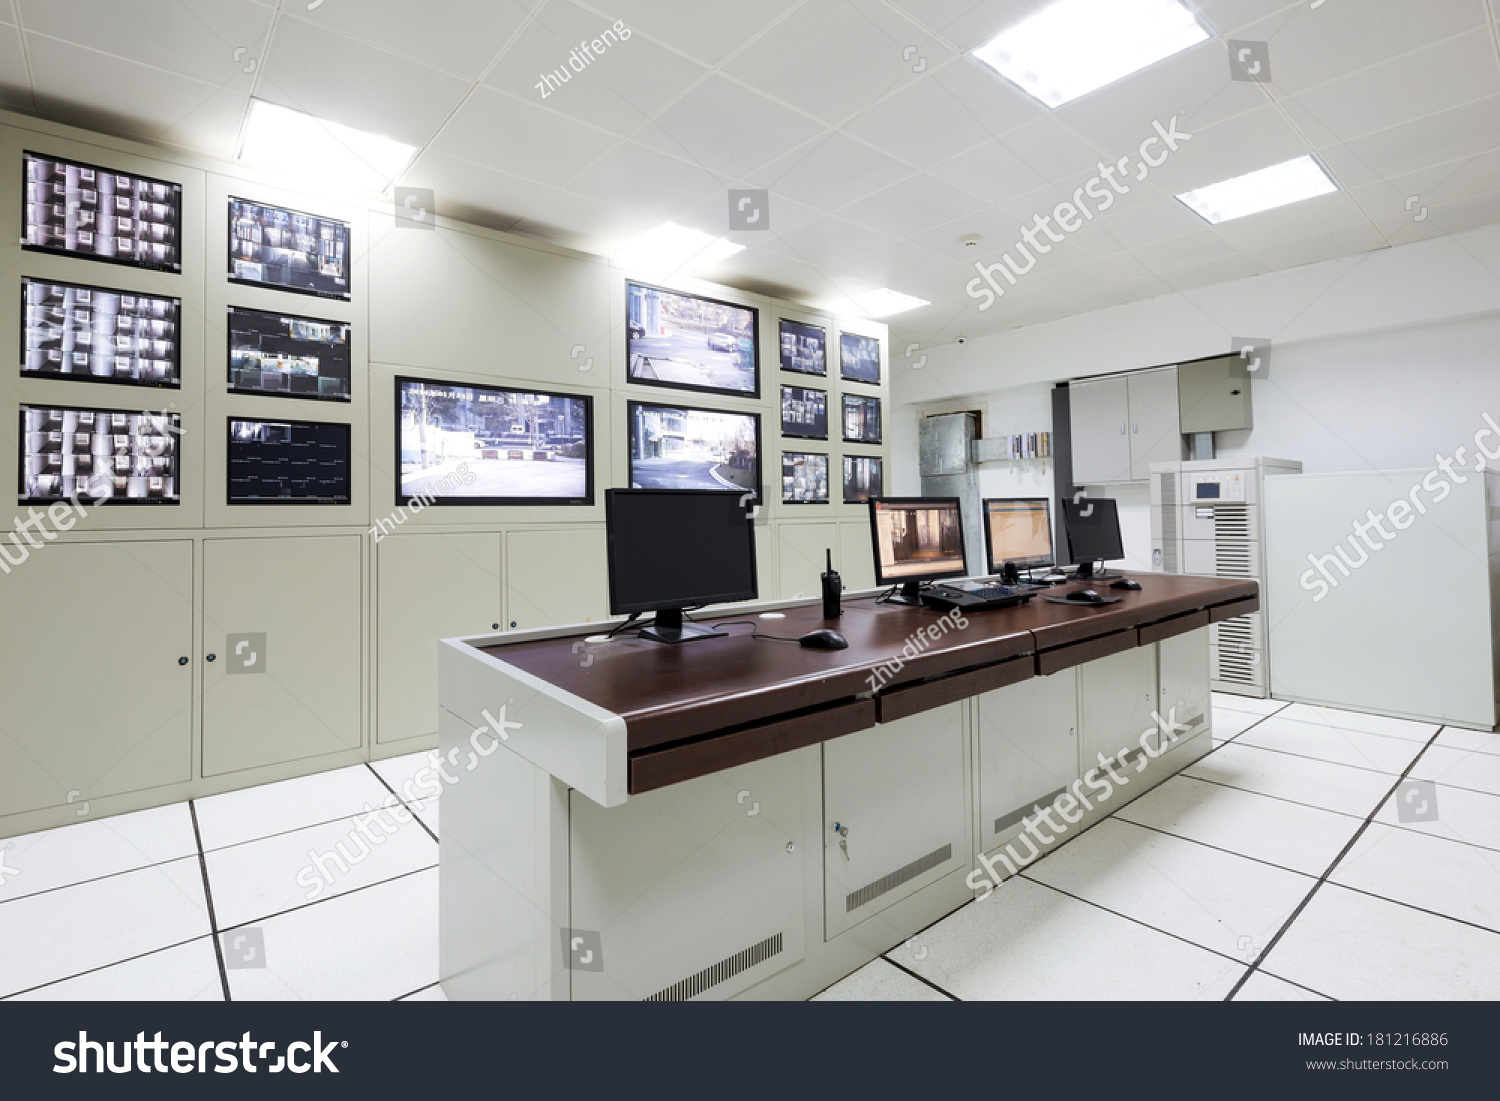 Control Room Furniture Property control room modern office stock photo 181216886 - shutterstock